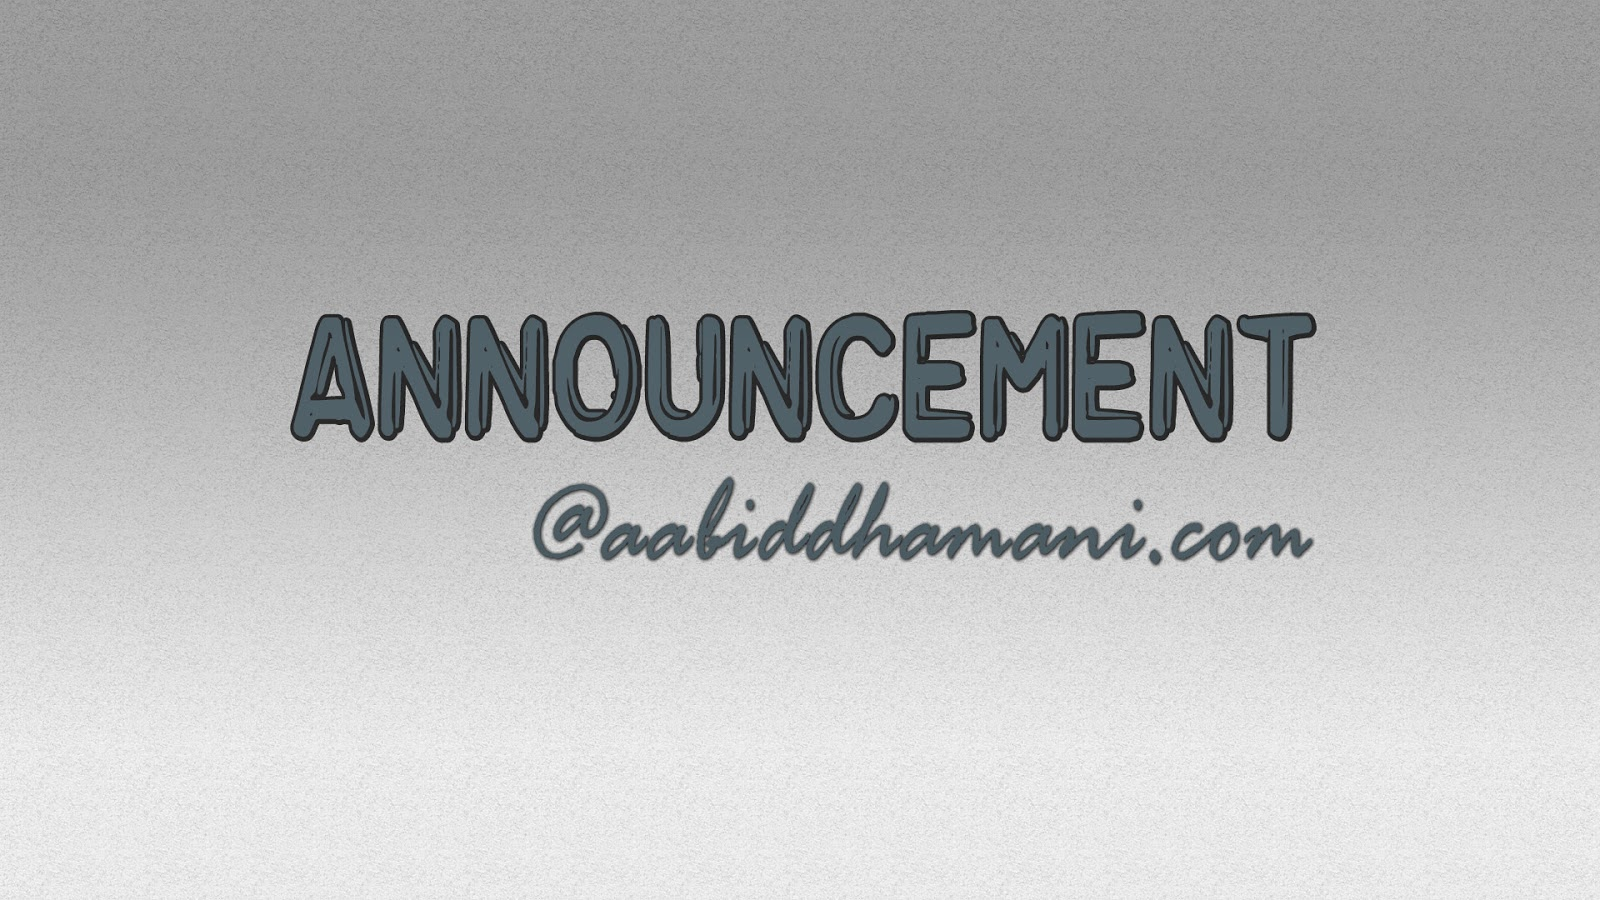 Announcement @aabiddhamani.com